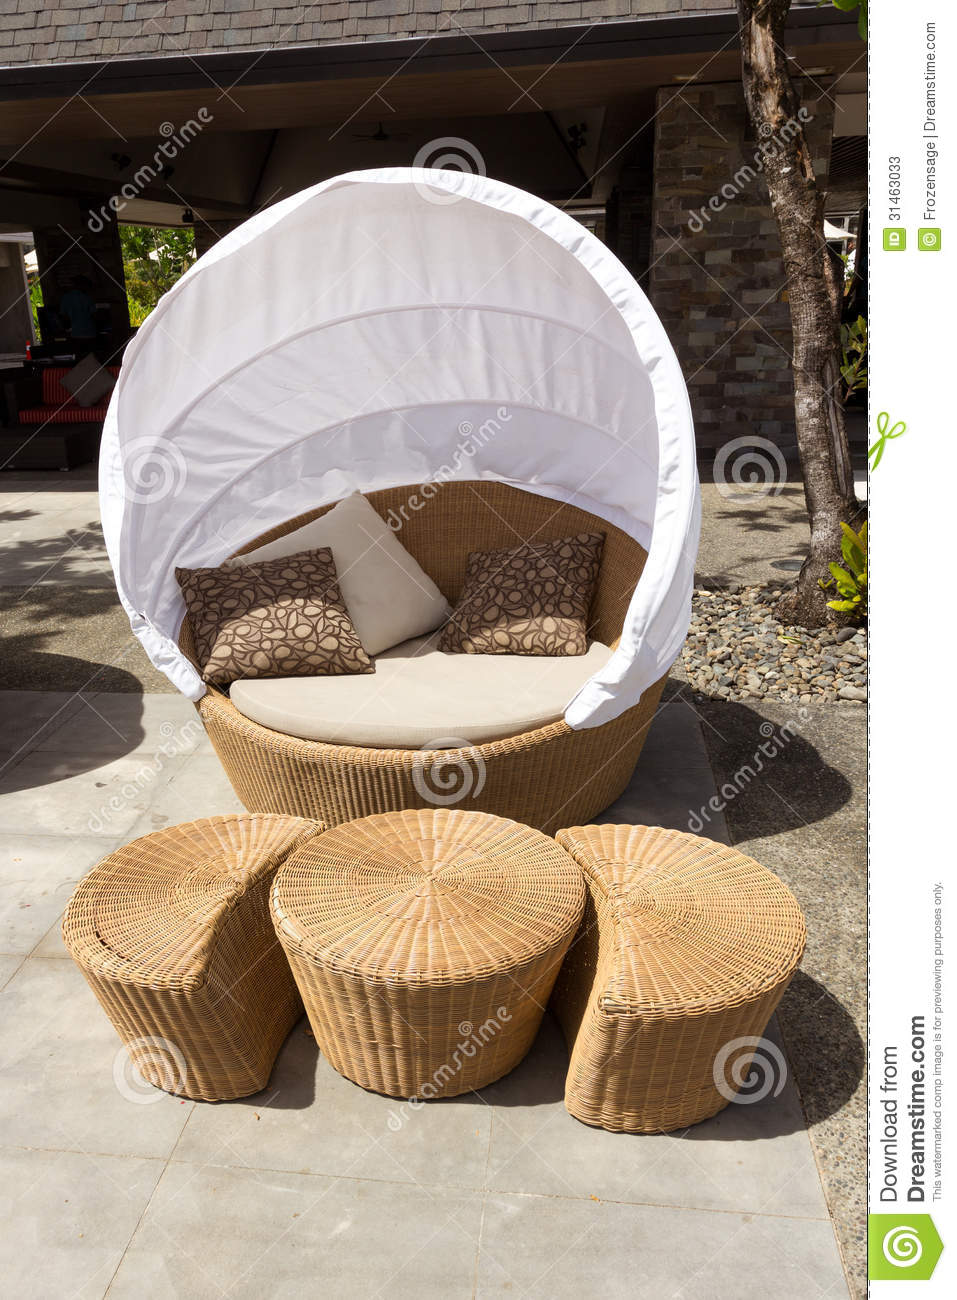 Outdoor Sofa Chair With Cover Stock Image Image 31463033